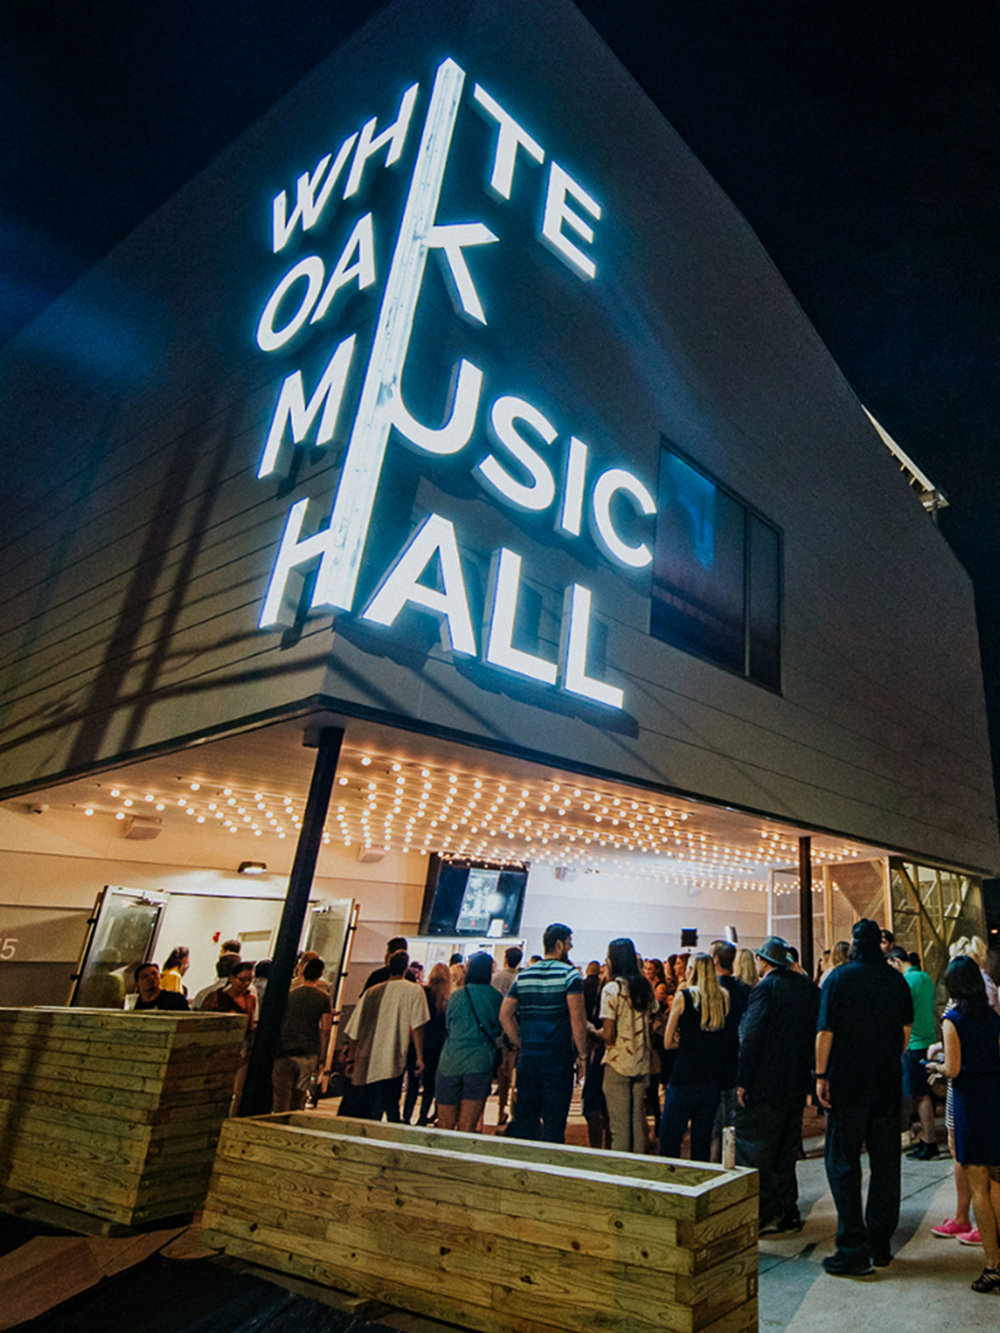 White Oak Music Hall brings multi-stage music experience to Houston Chron.com by Craig Hlavaty (May 2016)